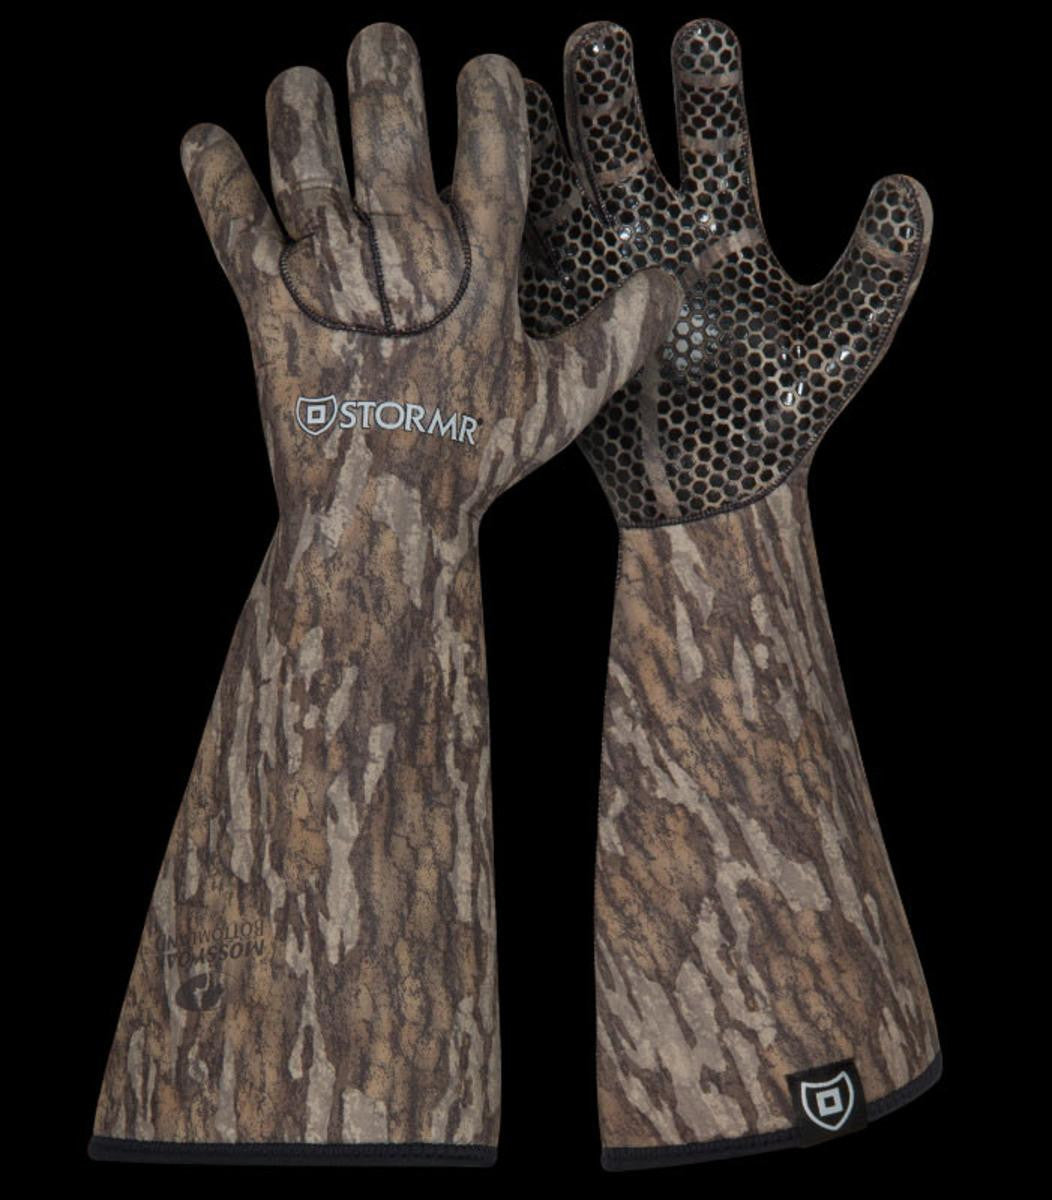 Stormr Stealth Gauntlet Glove - Mossy Oak Bottomland